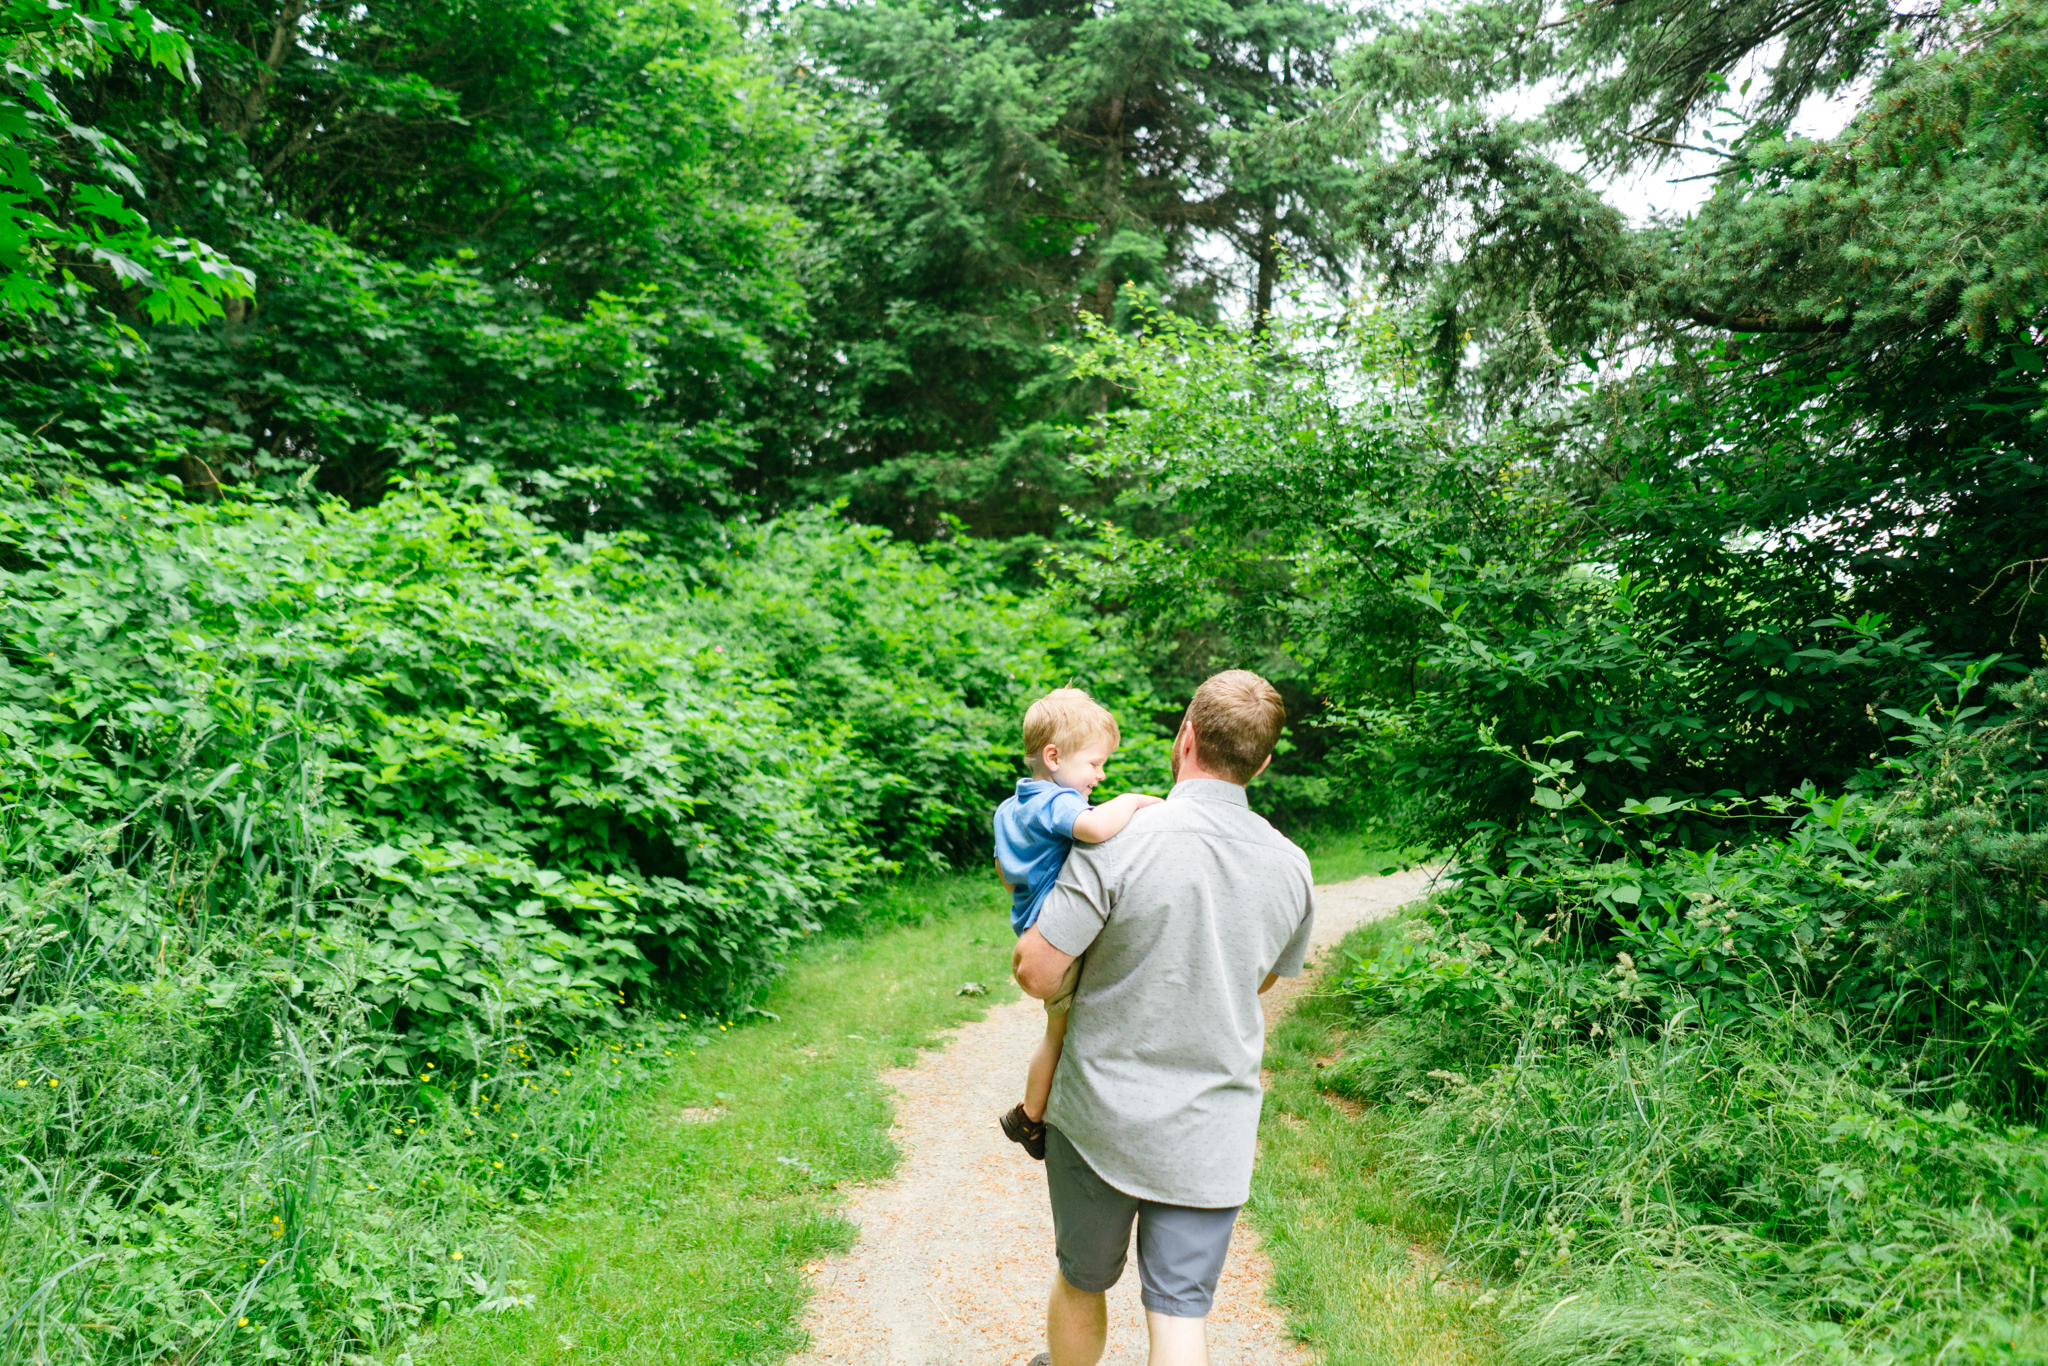 Best Parks For Kids and Families in Bothell, Washington